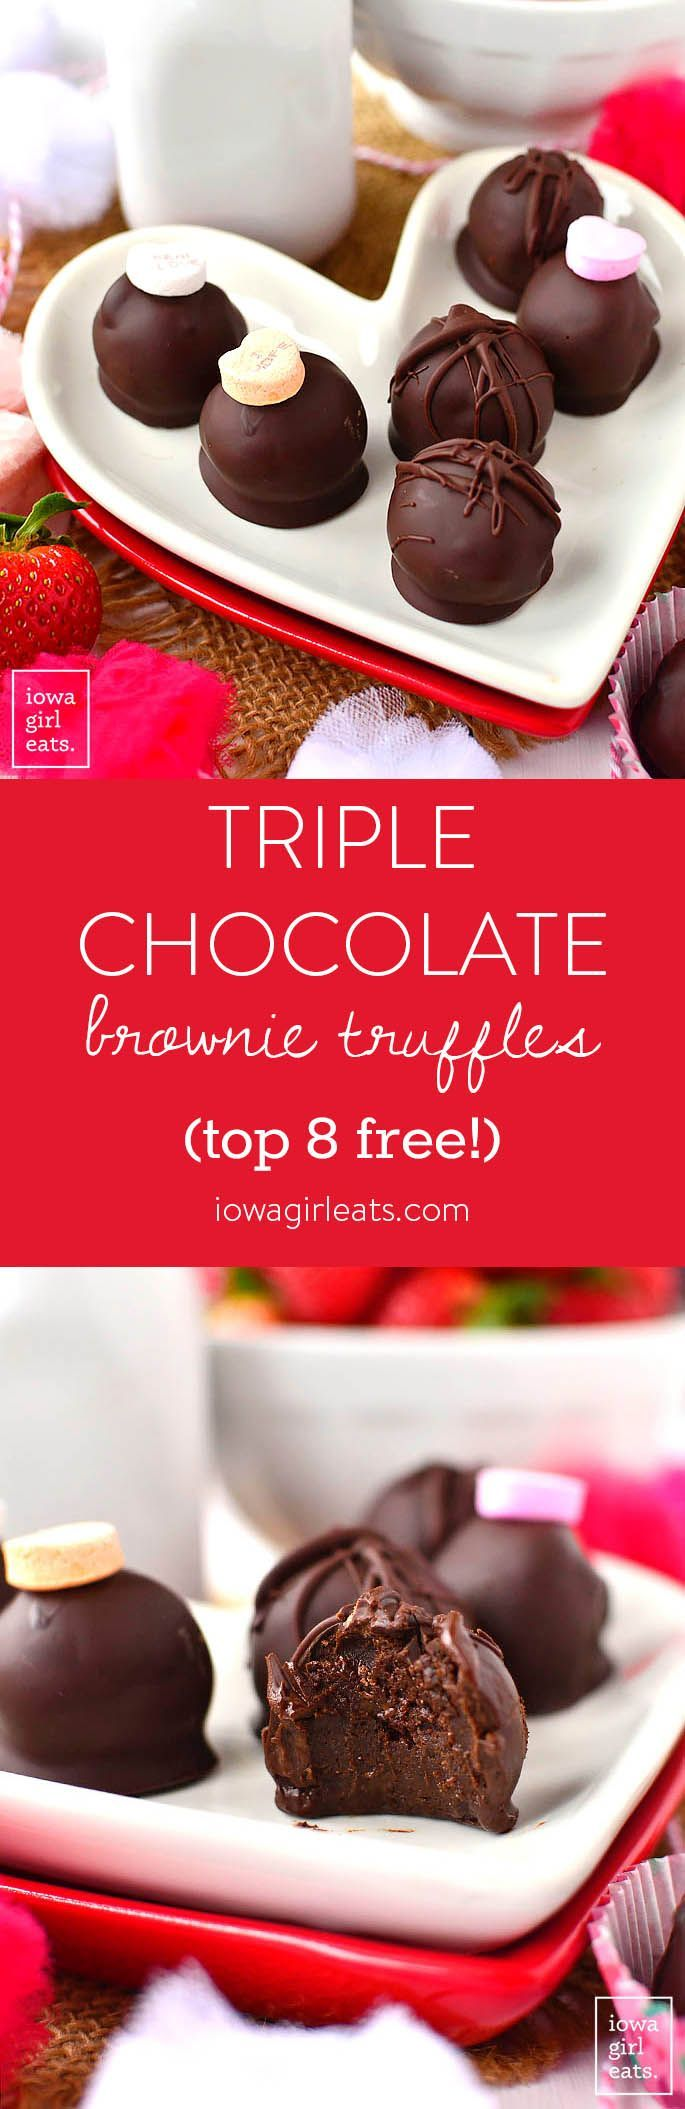 Triple Chocolate Brownie Truffles are decadent yet super easy, and free from the top 8 food allergens. A must-try for chocoholics! | iowagirleats.com